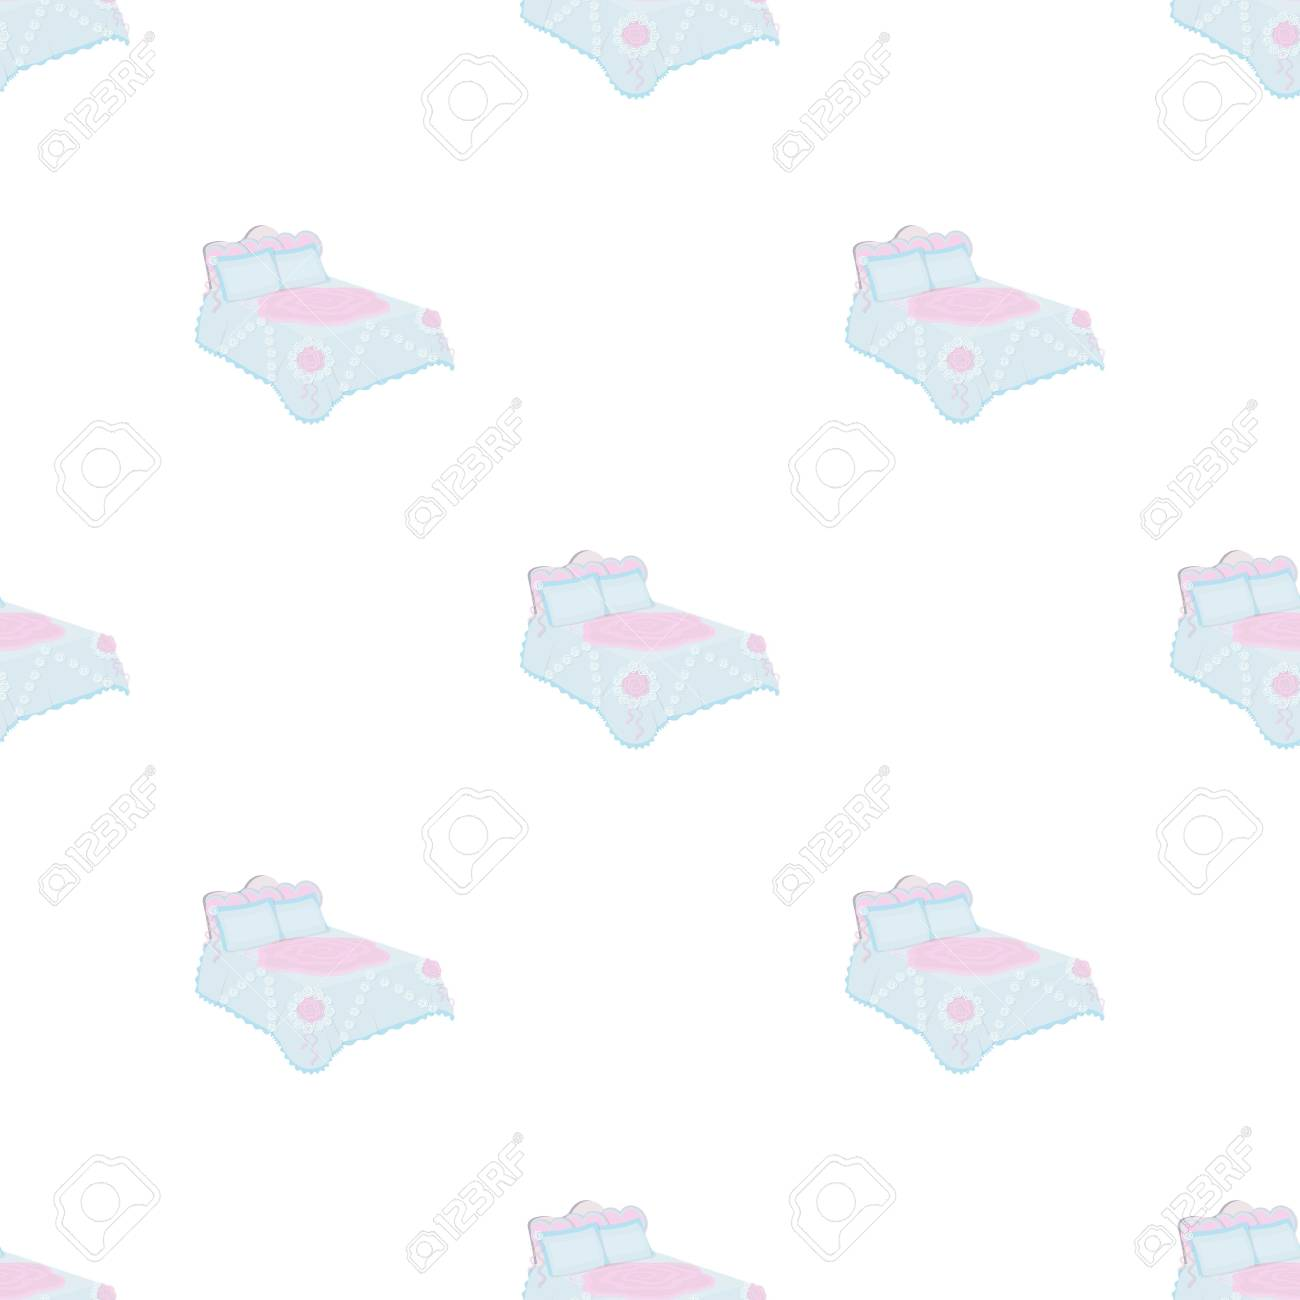 Single Coverlet Stock Illustration